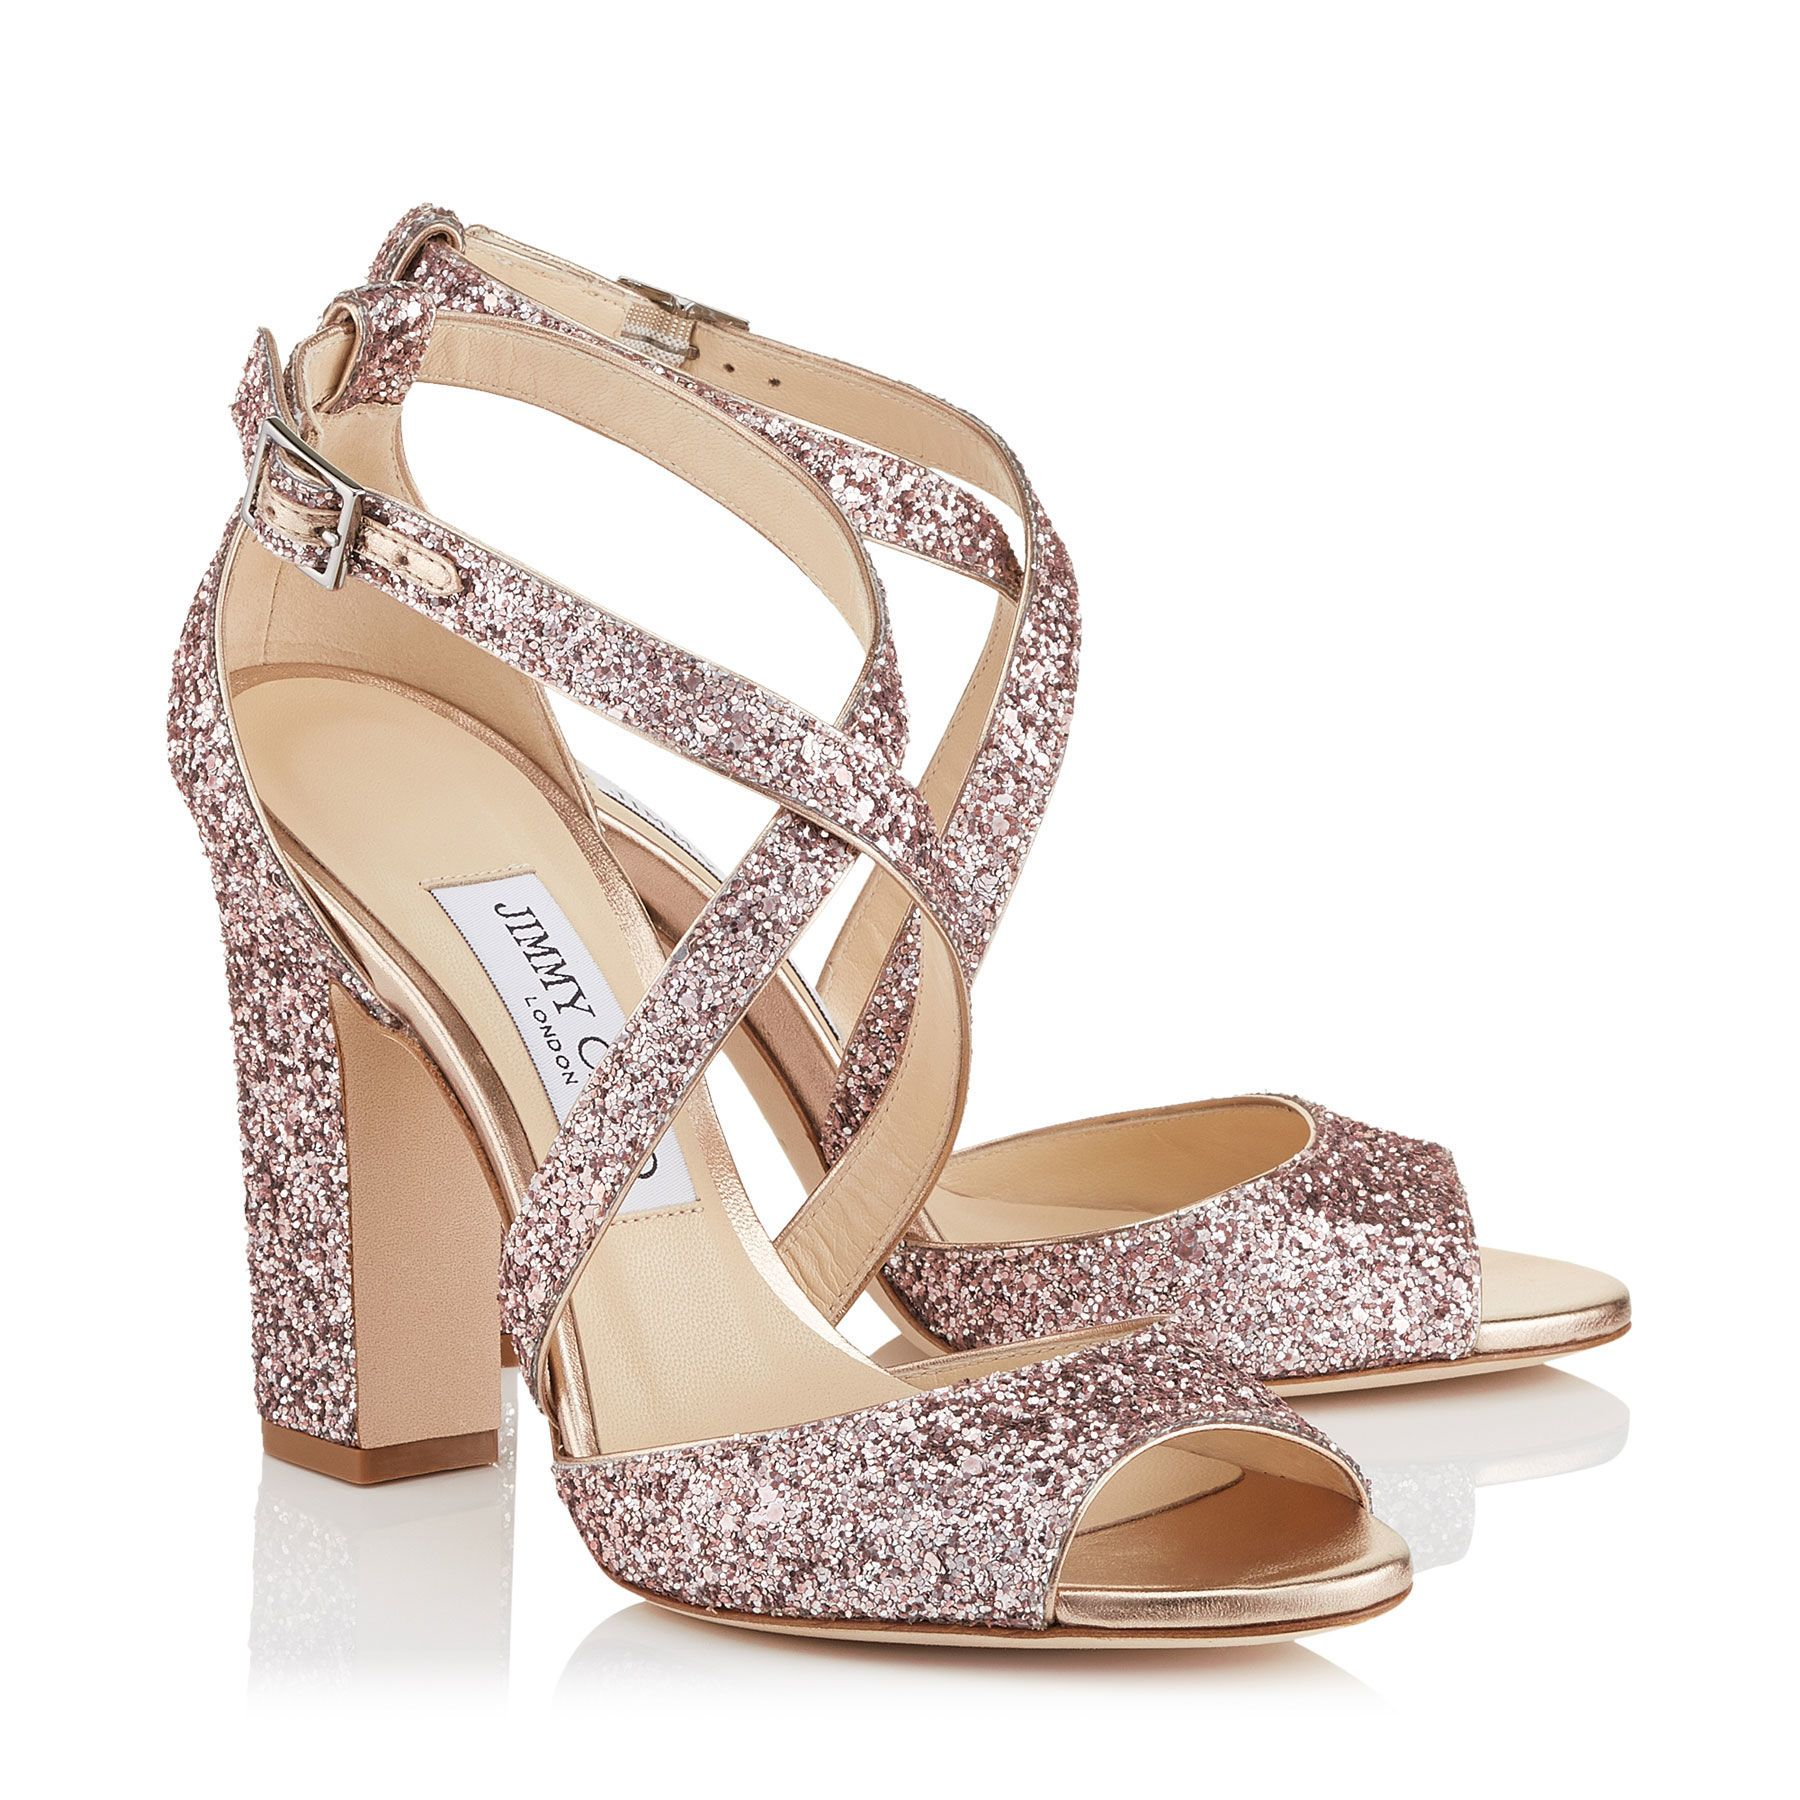 best online outlet get authentic Jimmy Choo Carrie 100 Leather Pe... wt4xJwEM